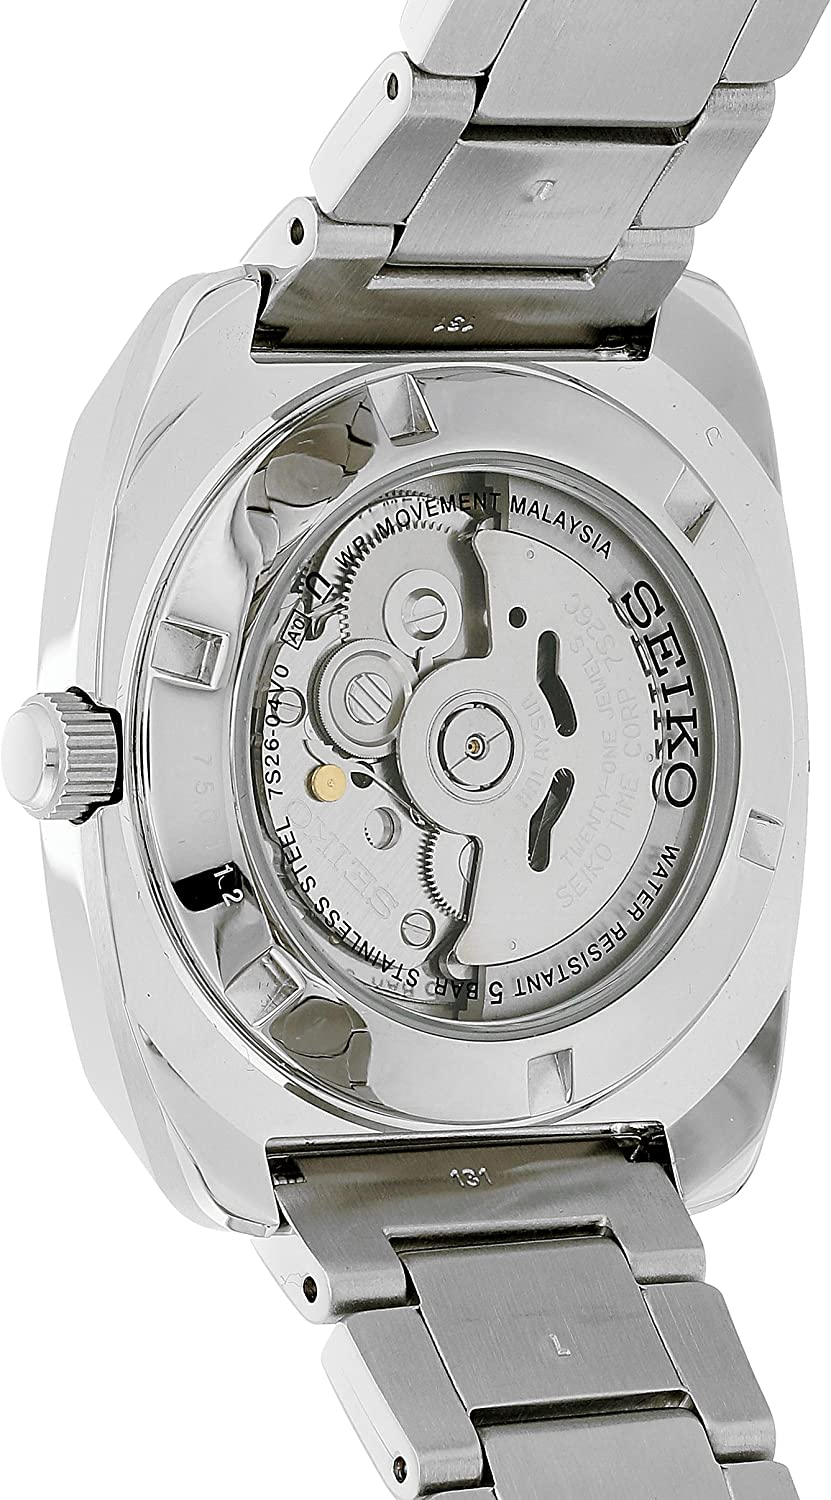 Seiko Mens RECRAFT Series Stainless Steel Automatic-self-Wind Watch with Stainless-Steel Strap, Silver, 21 (Model: SNKP23)